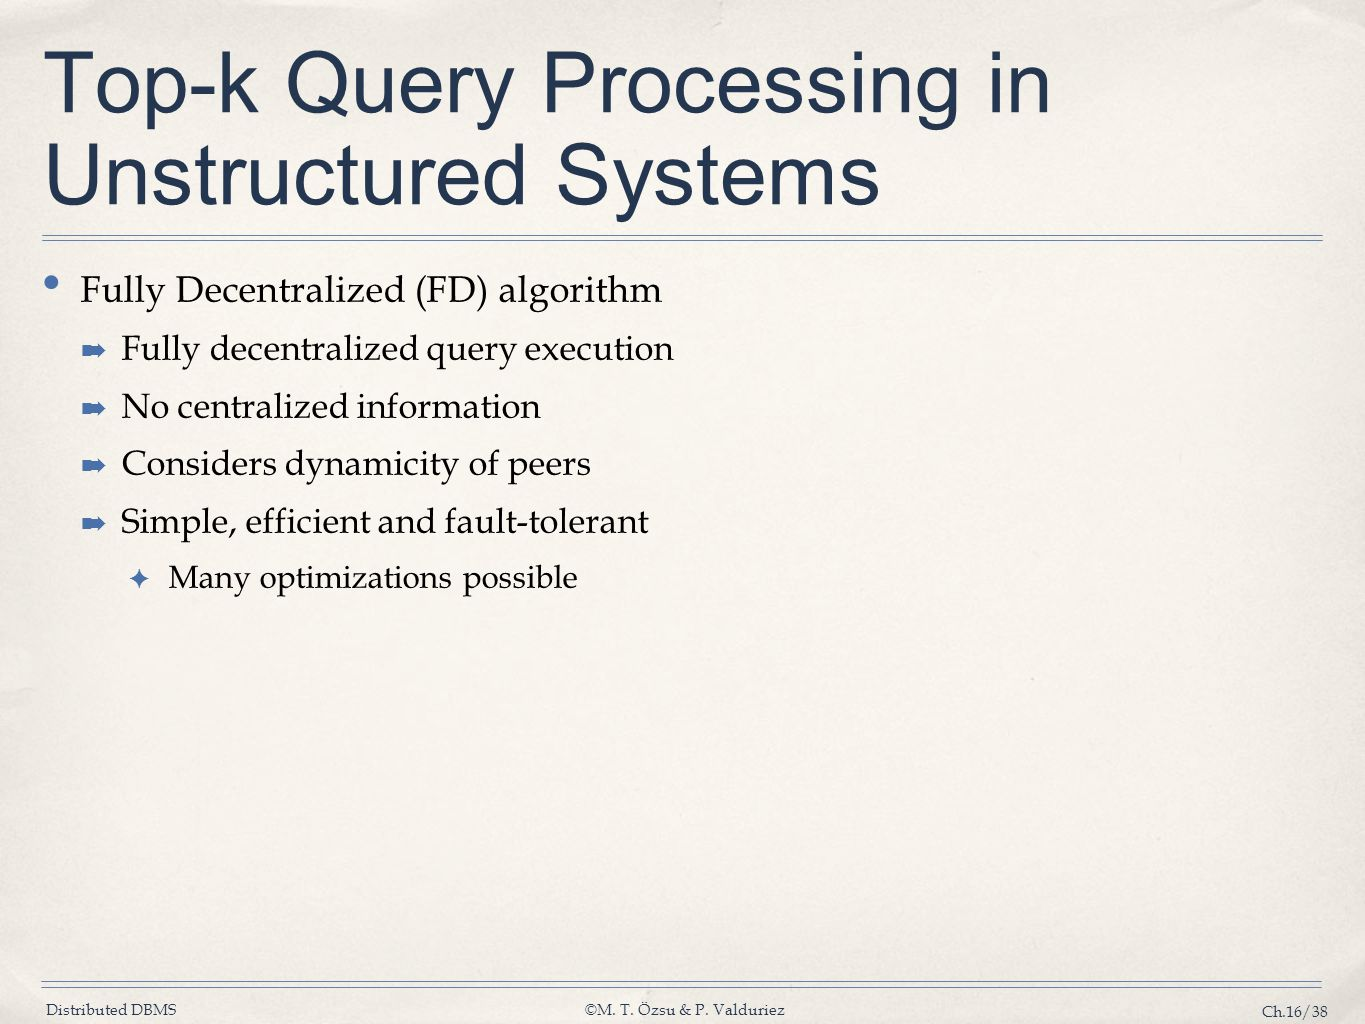 Top-k Query Processing in Unstructured Systems